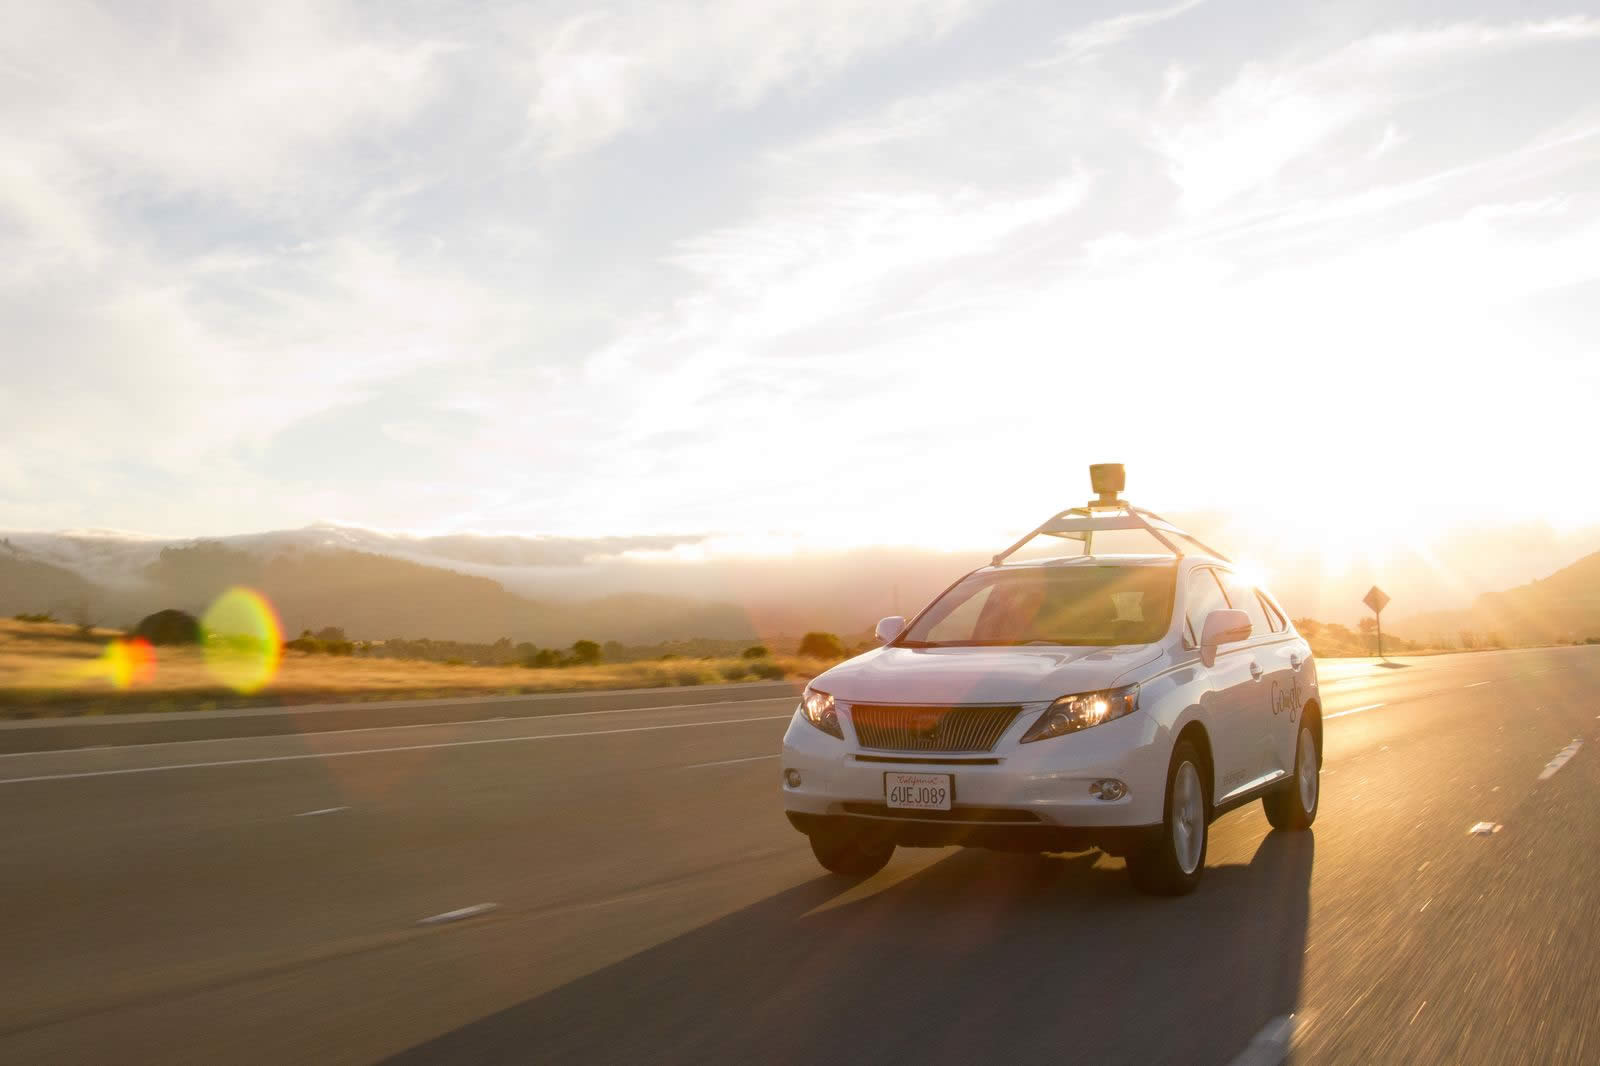 Self-Driving Cars A Reality? Google And Ford In Talks